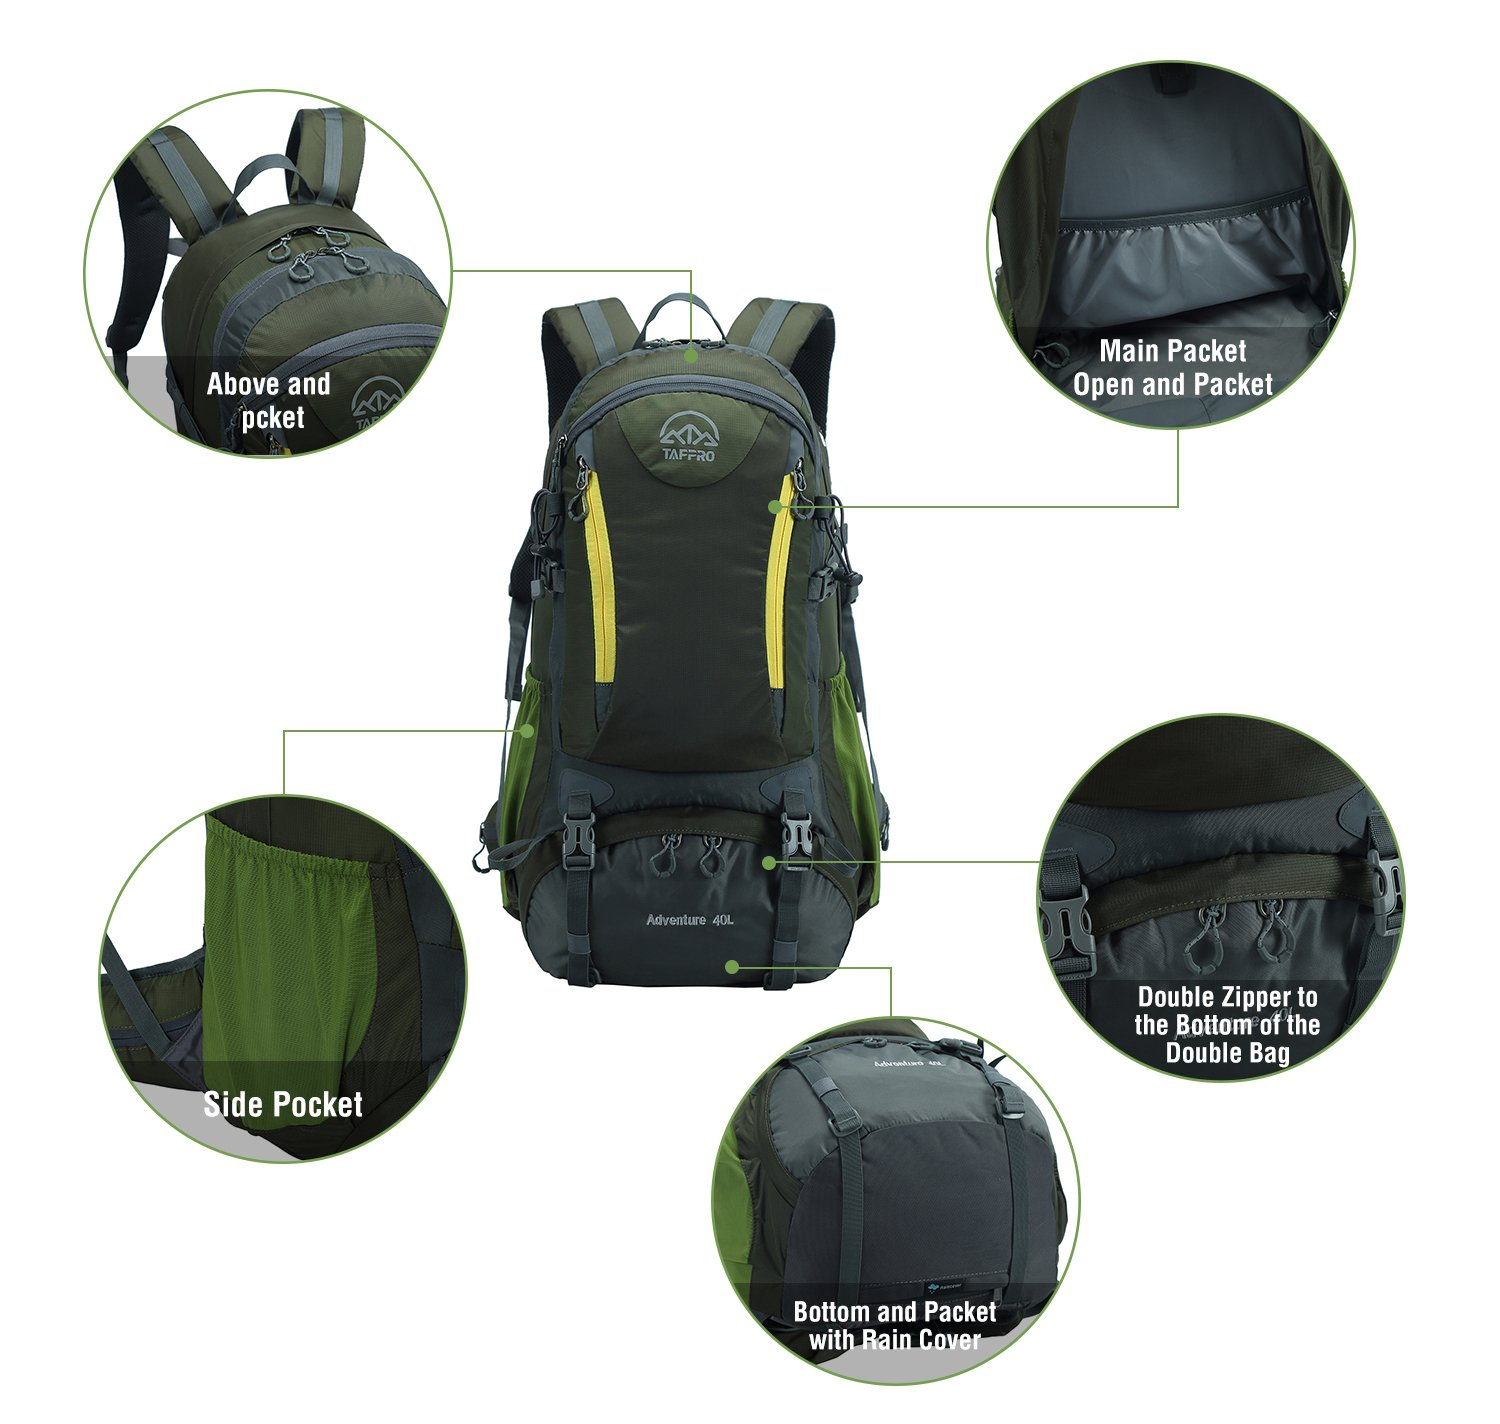 8c9b7216a3cf Amazon.com   Tappro Lightweight Packable Hiking Backpack with Rain Cover  for Travel Climbing Camping Mountaineering Backpacking   Sports   Outdoors